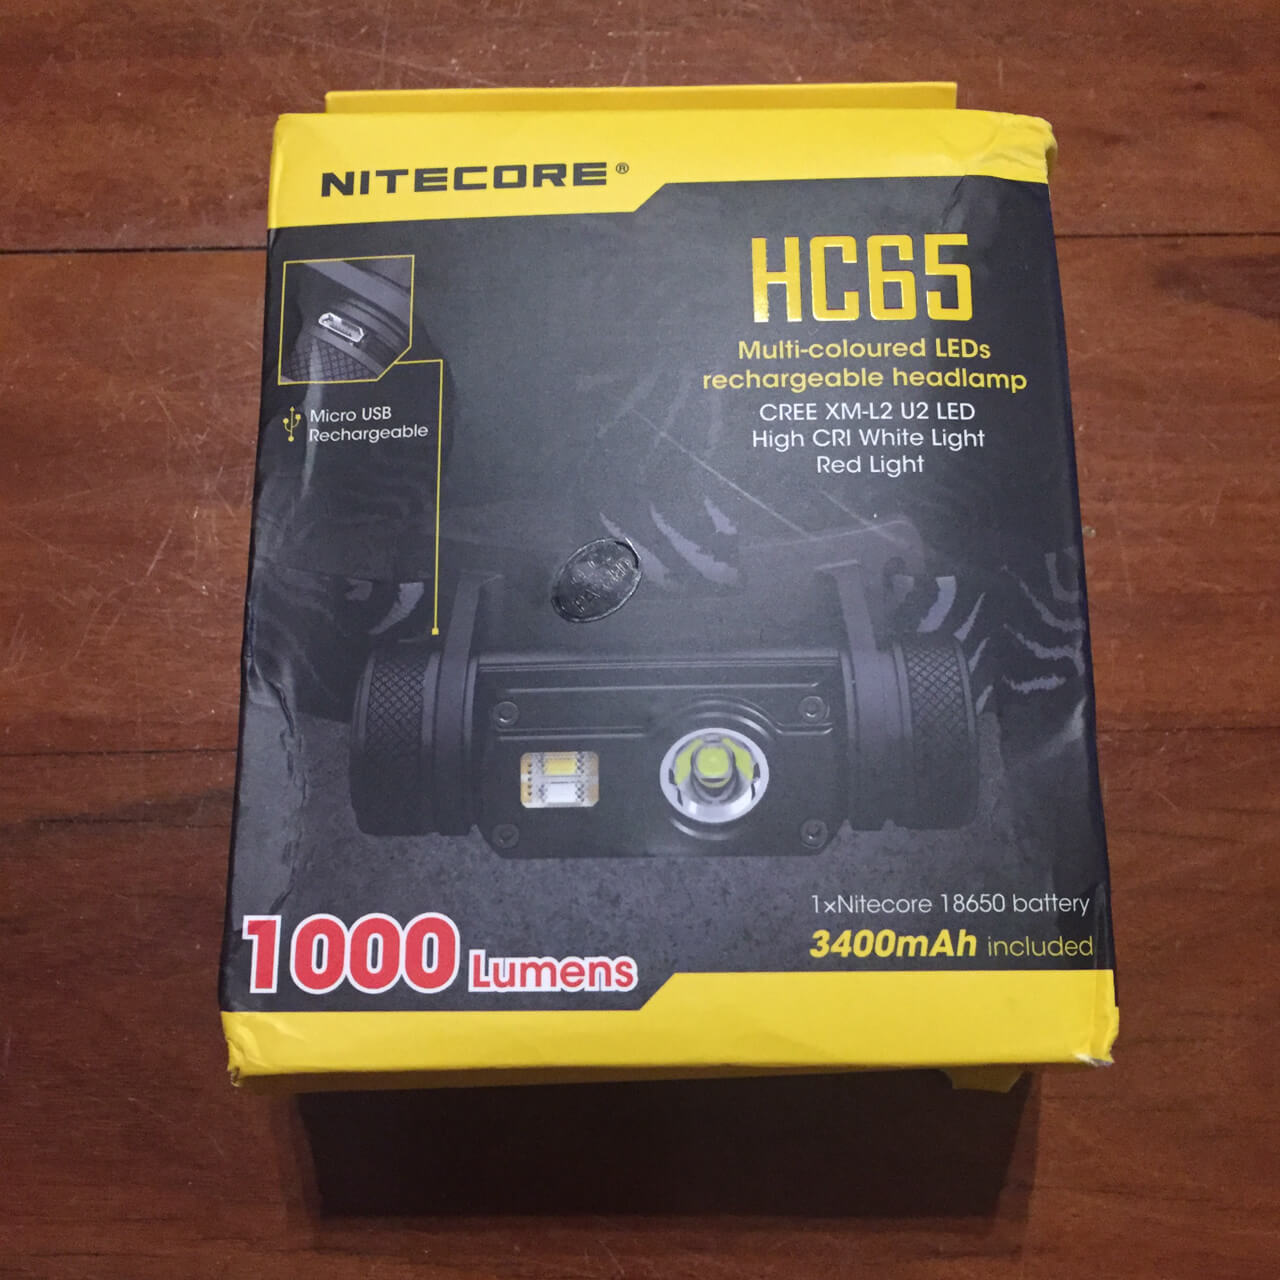 Nitecore HC65 Headlamp Packaging